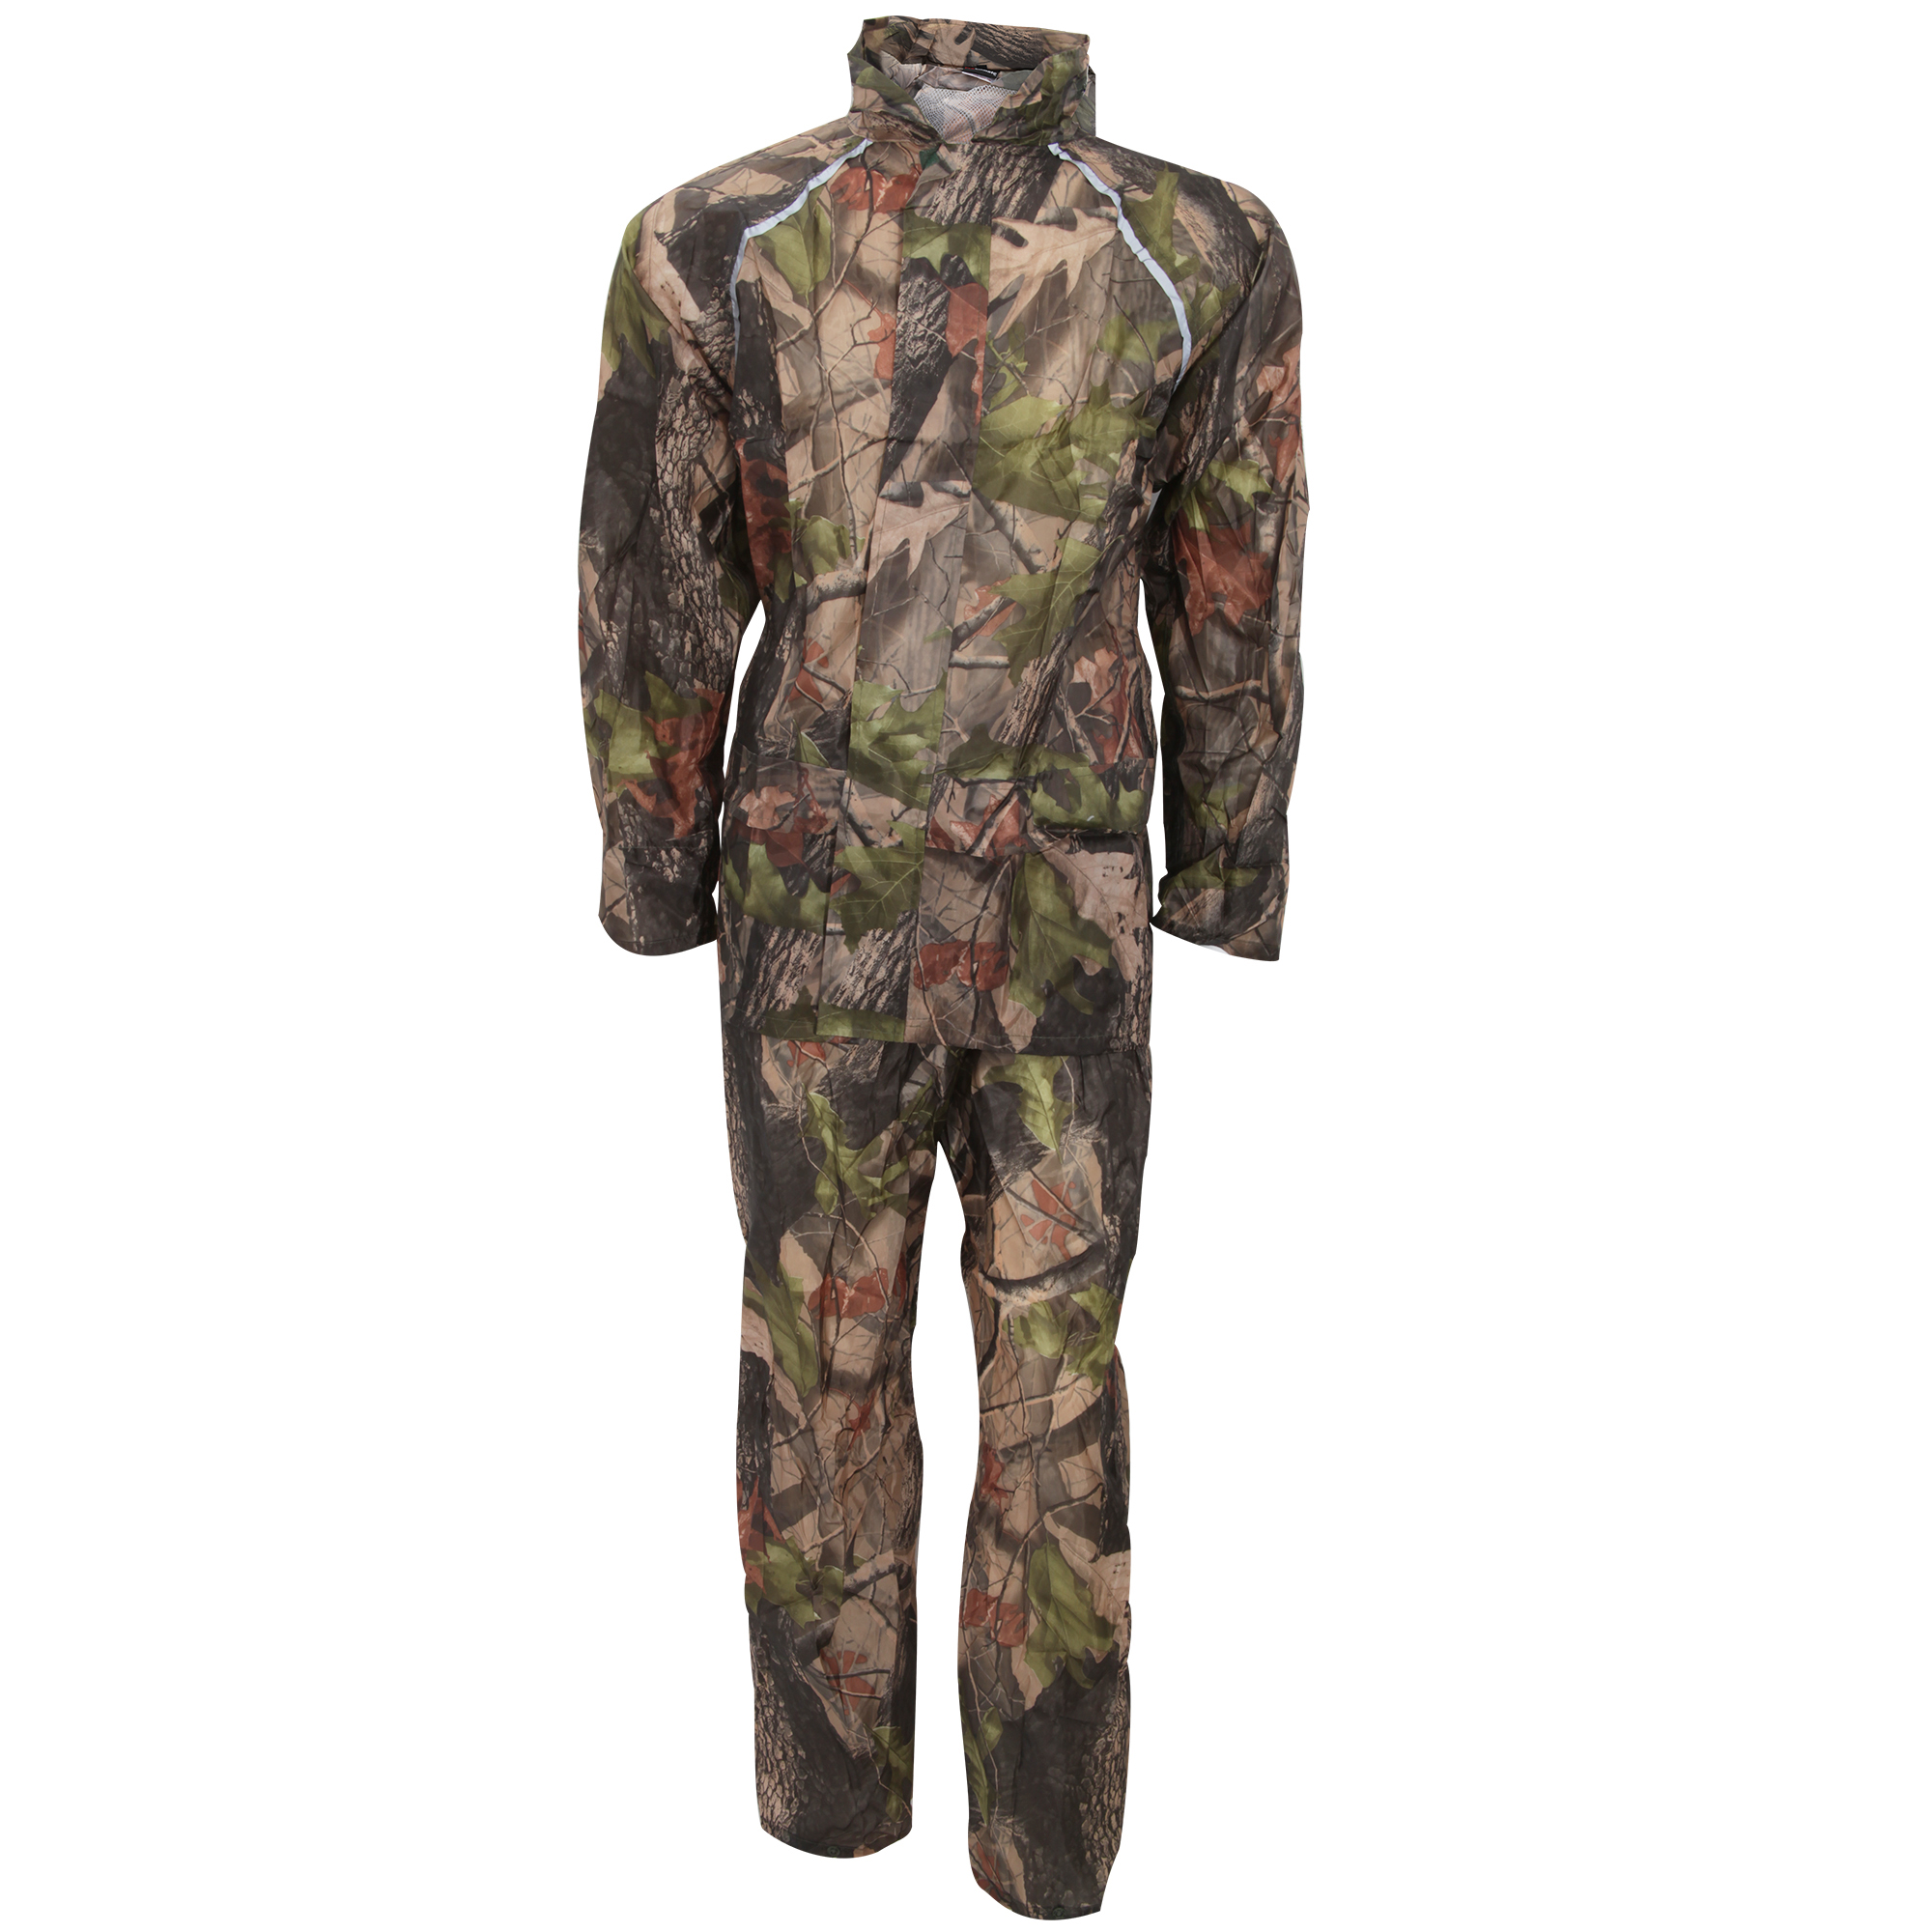 ProClimate Mens Waterproof Camouflage Rain Suit (F357)  Picture 2 of 2 0736b6f672b7b